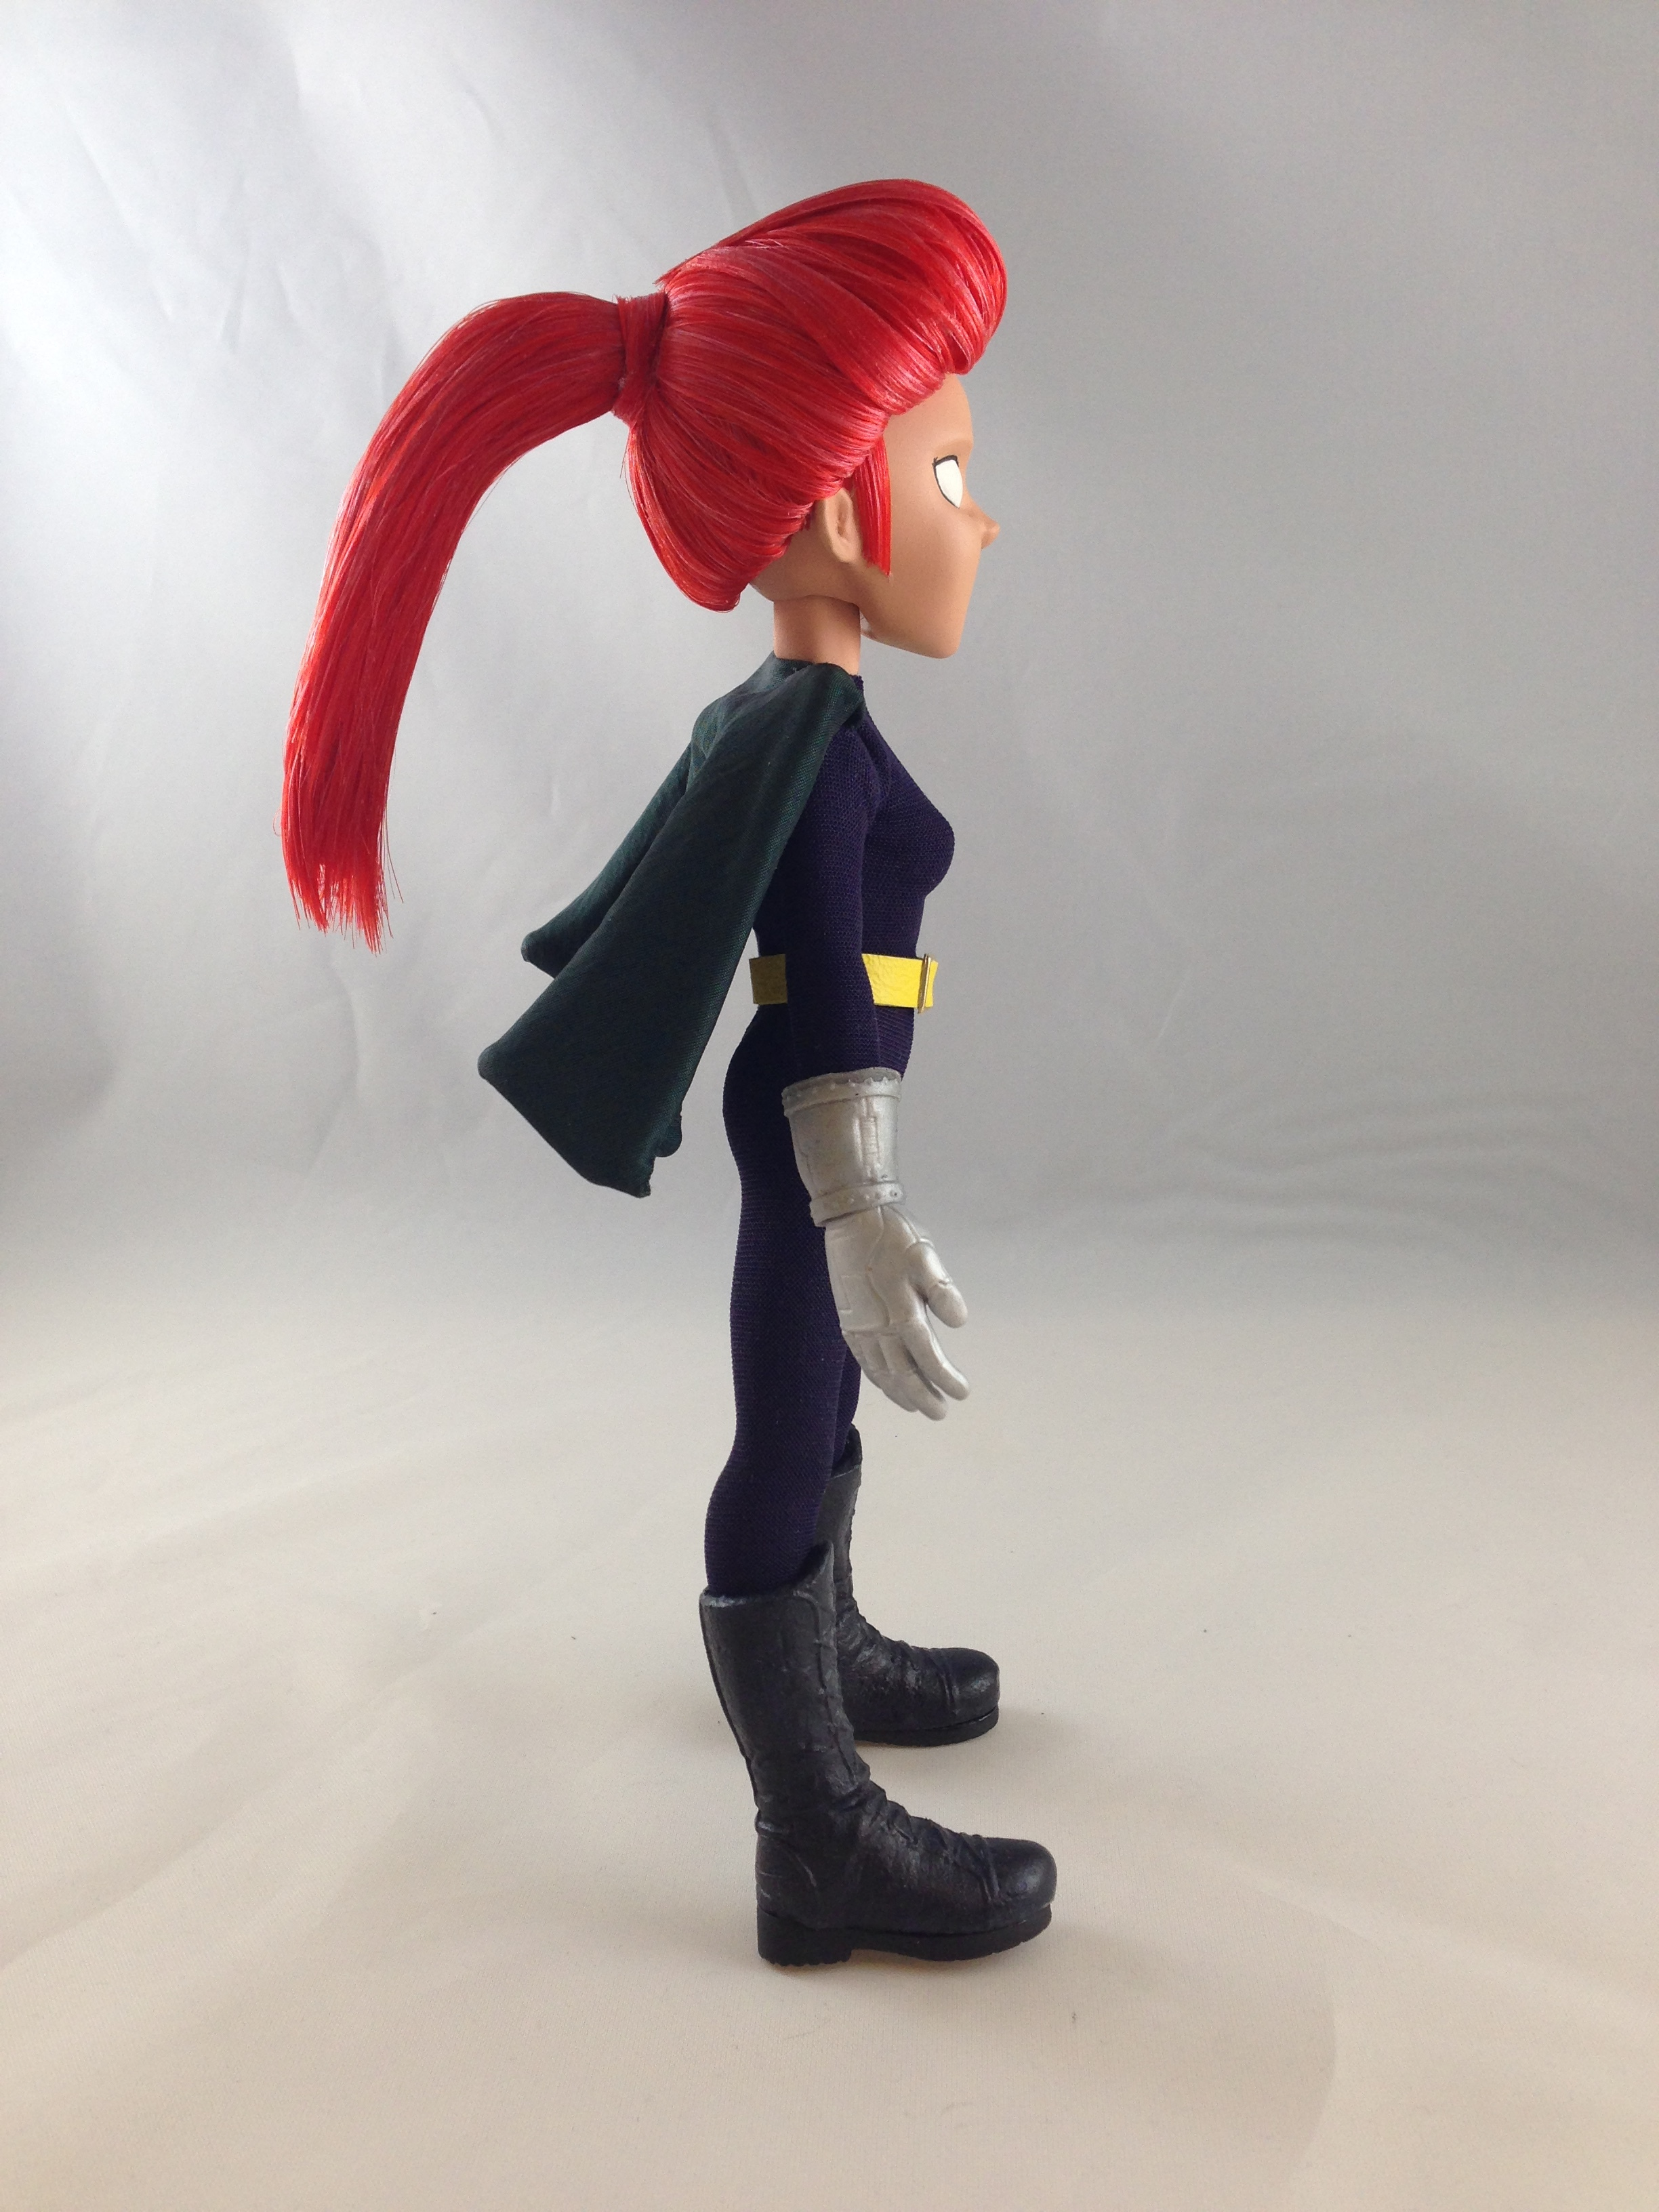 Lex Lightning - SuperMansion 2 (Hair Fabrication)